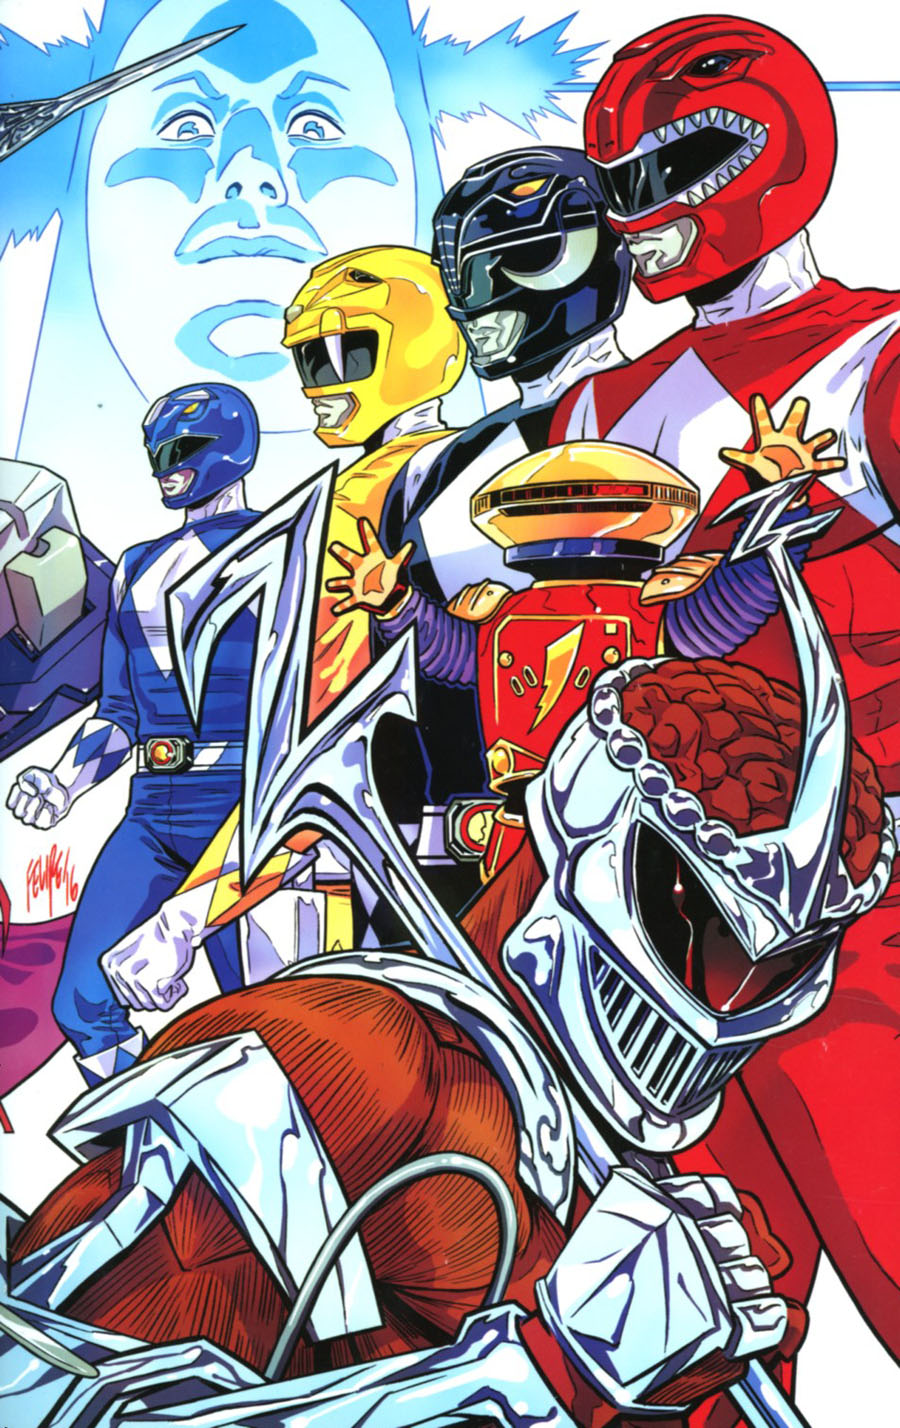 Mighty Morphin Power Rangers 2016 Annual #1 Cover E NYCC Exclusive Felipe Smith Variant Cover